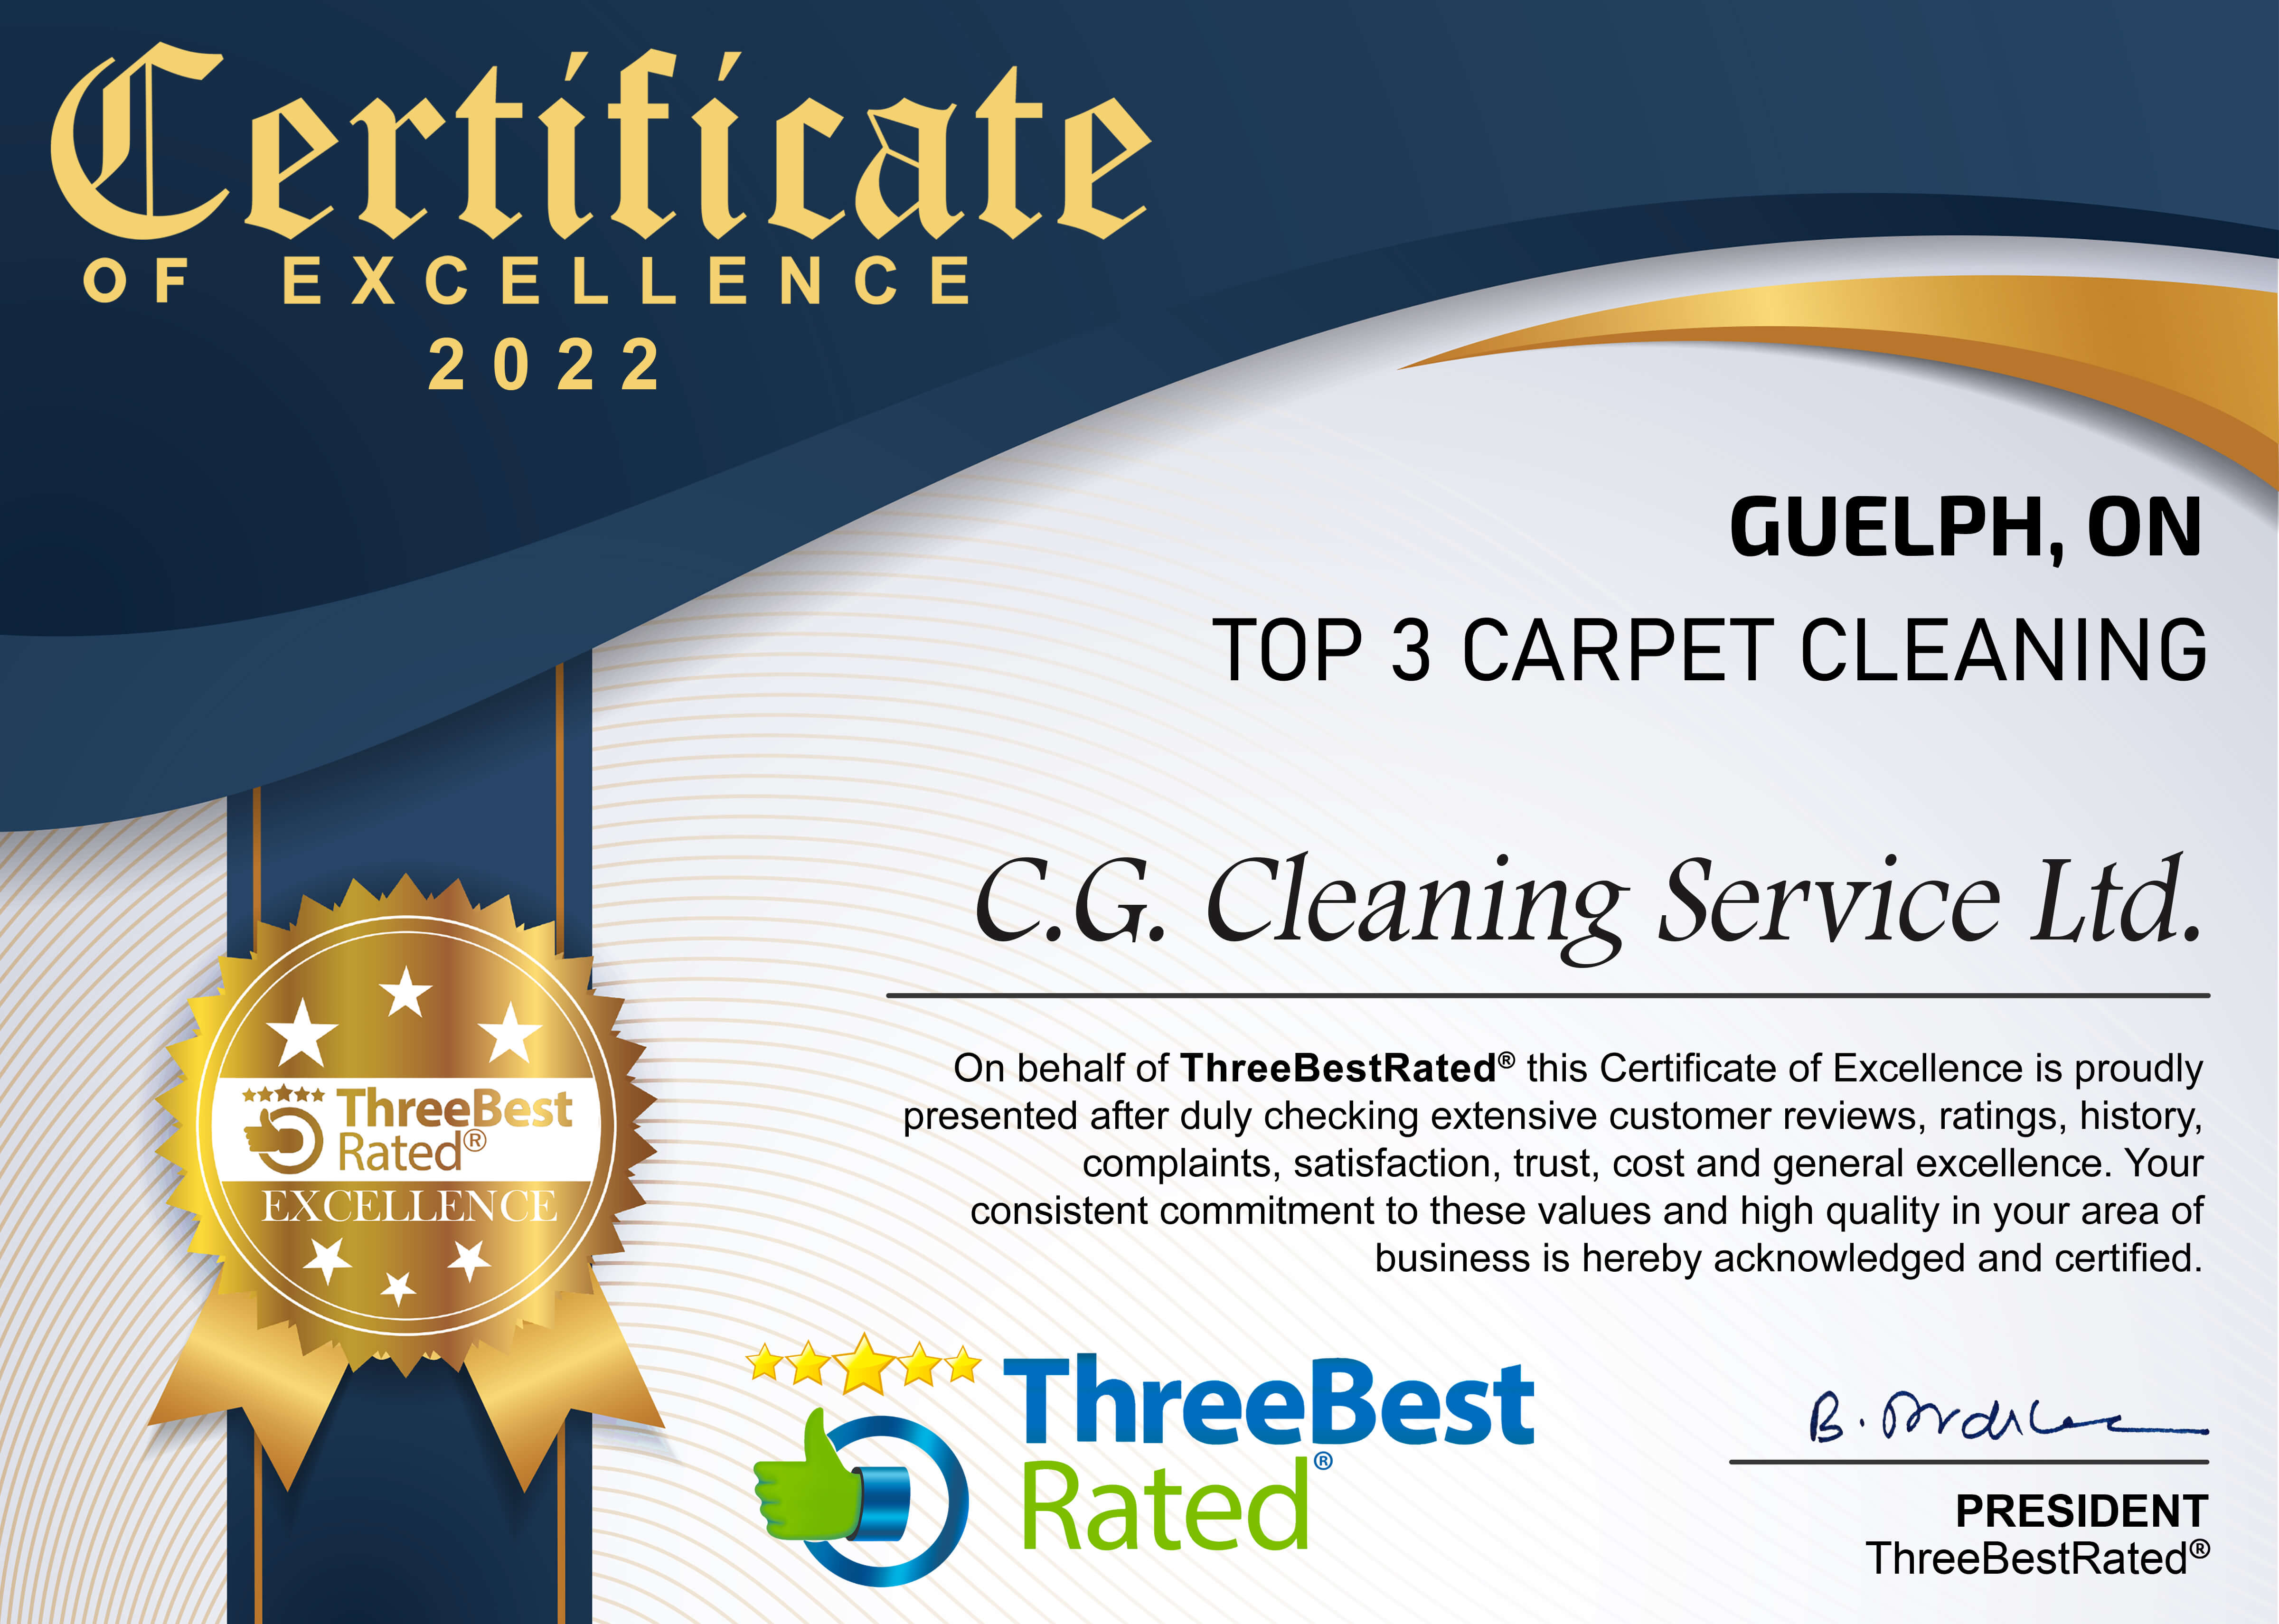 Best Carpet Cleaners in Guelph